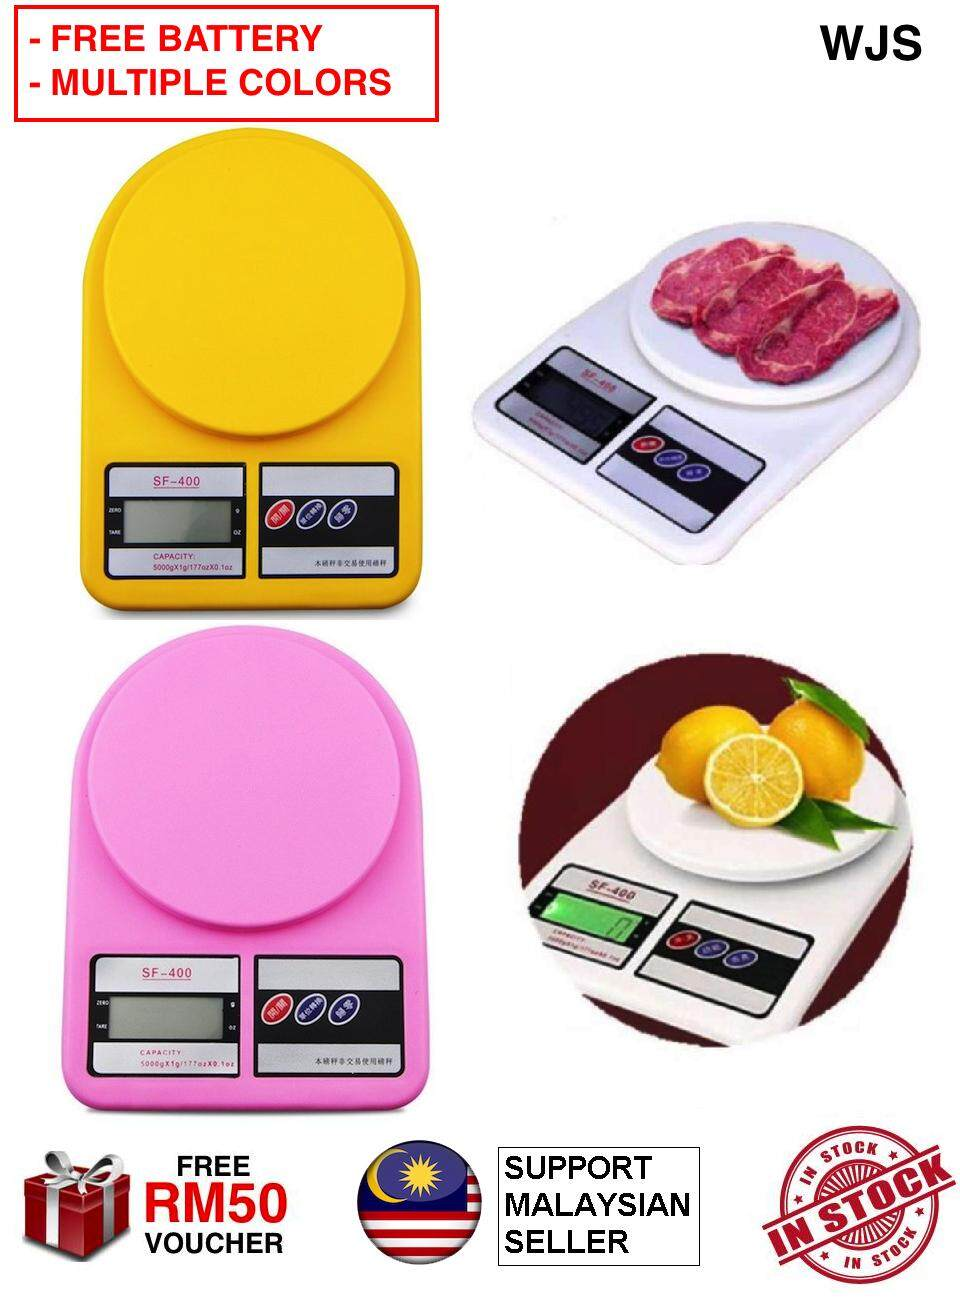 (FREE BATTERY) WJS 10kg 10 KG Kitchen Digital Scale Multi Function Kitchen and Food Digital Scale Weighing Tool Multifunctional WHITE YELLOW PINK BLUE GREEN [FREE RM 50 VOUCHER]